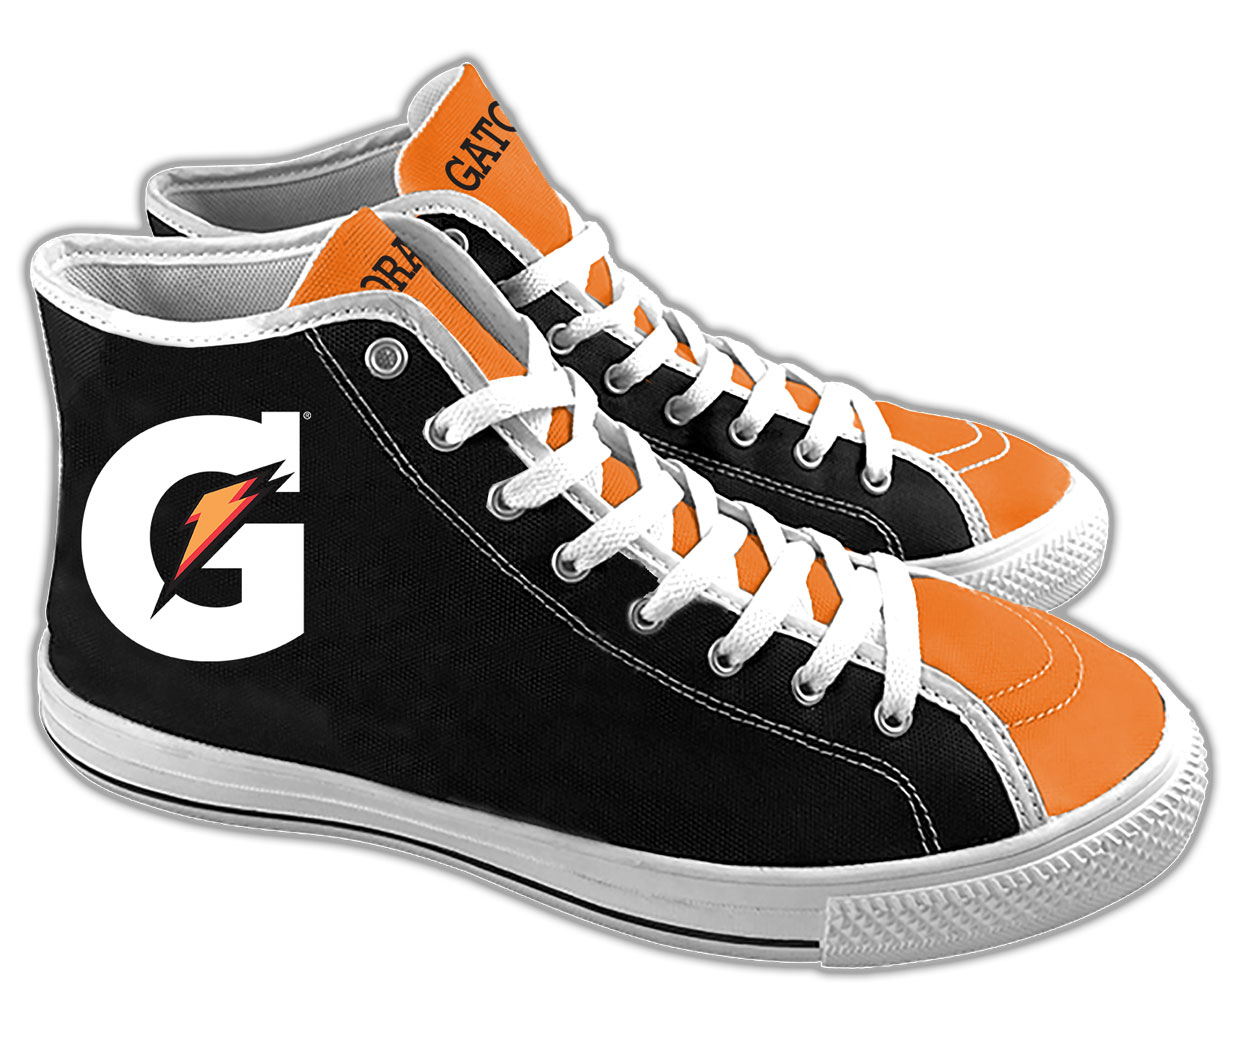 Men's Court Sneaker - Gatorade- Login For Special $